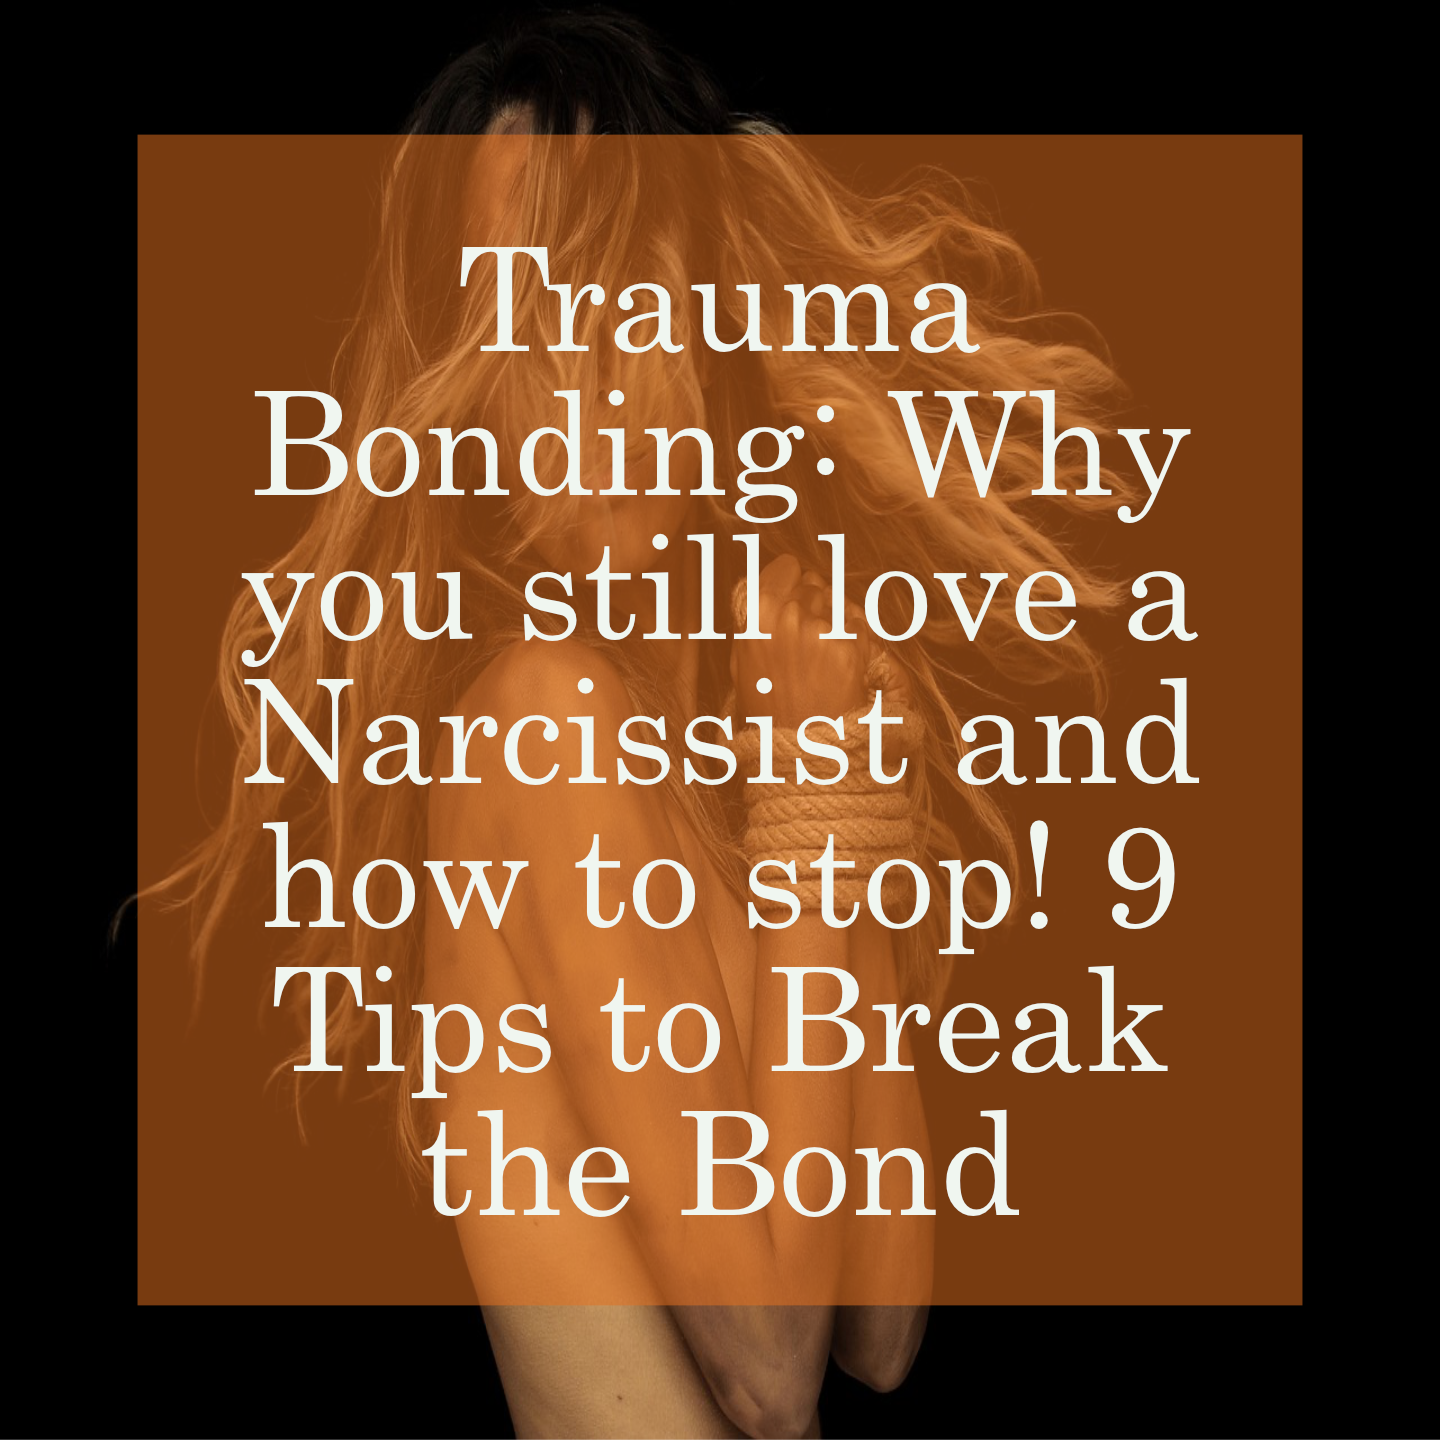 Trauma Bonding: Why you still love a Narcissist and how to stop! 9 Tips to Break the Bond